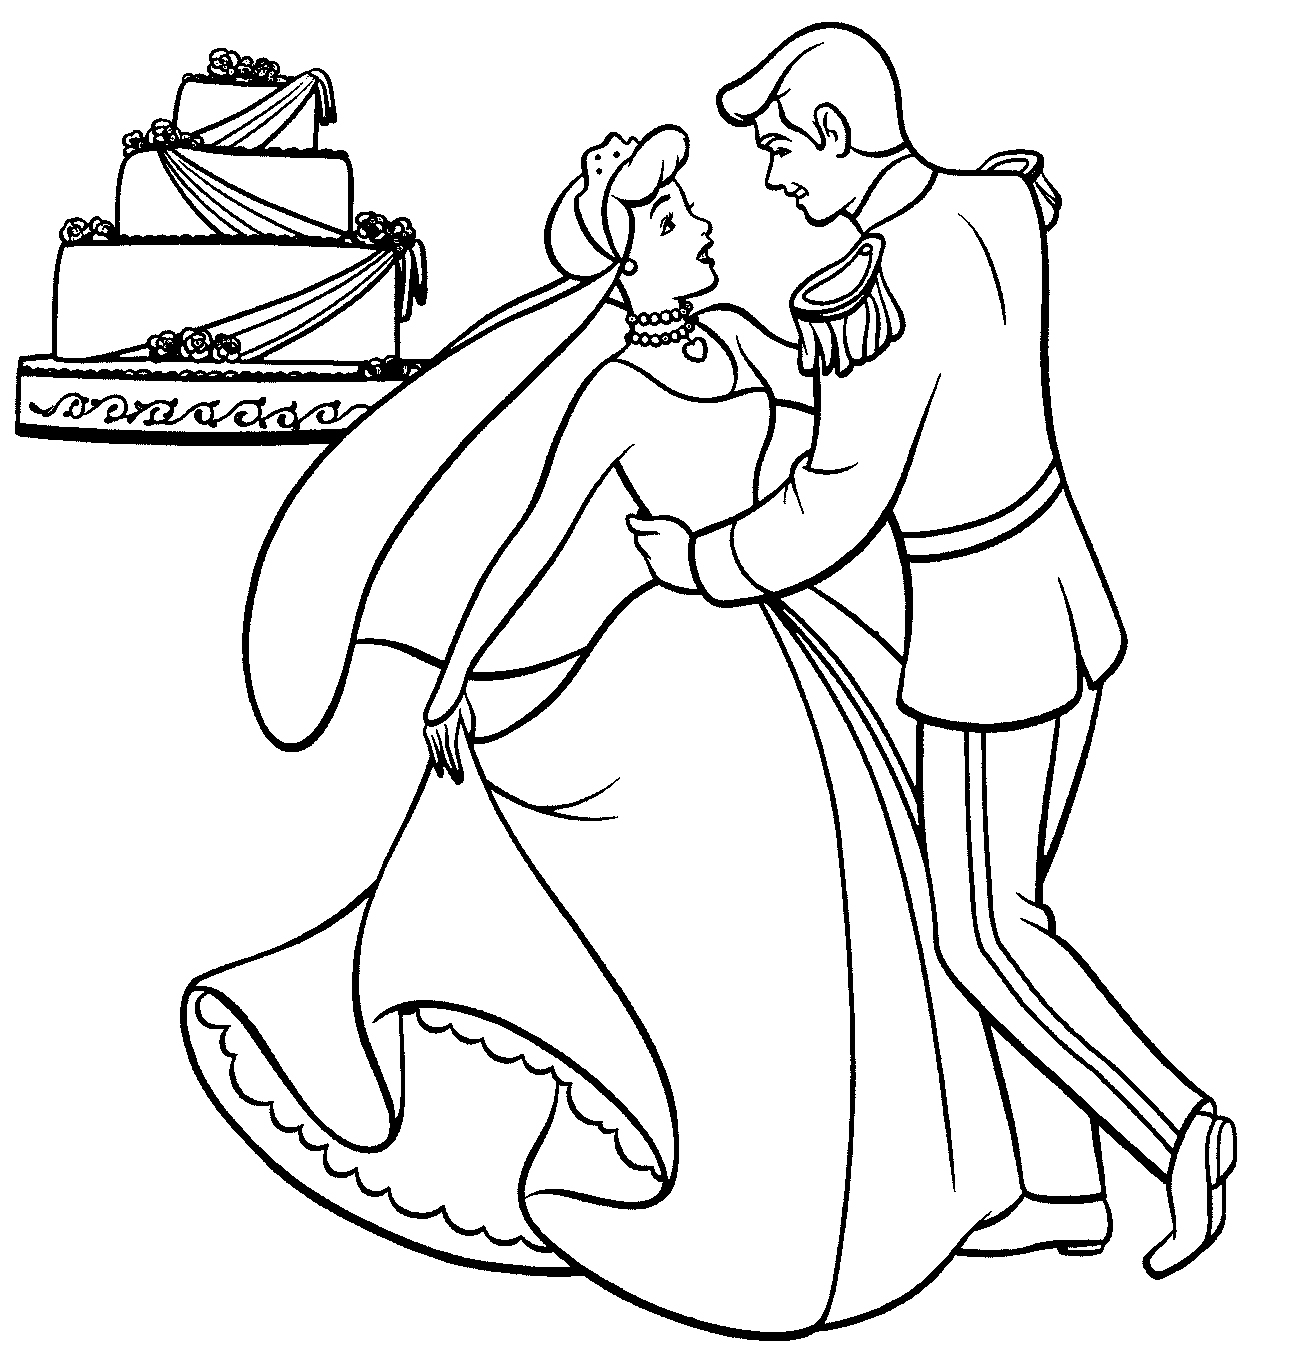 cinderella coloring page free printable cinderella activity sheets and coloring coloring cinderella page